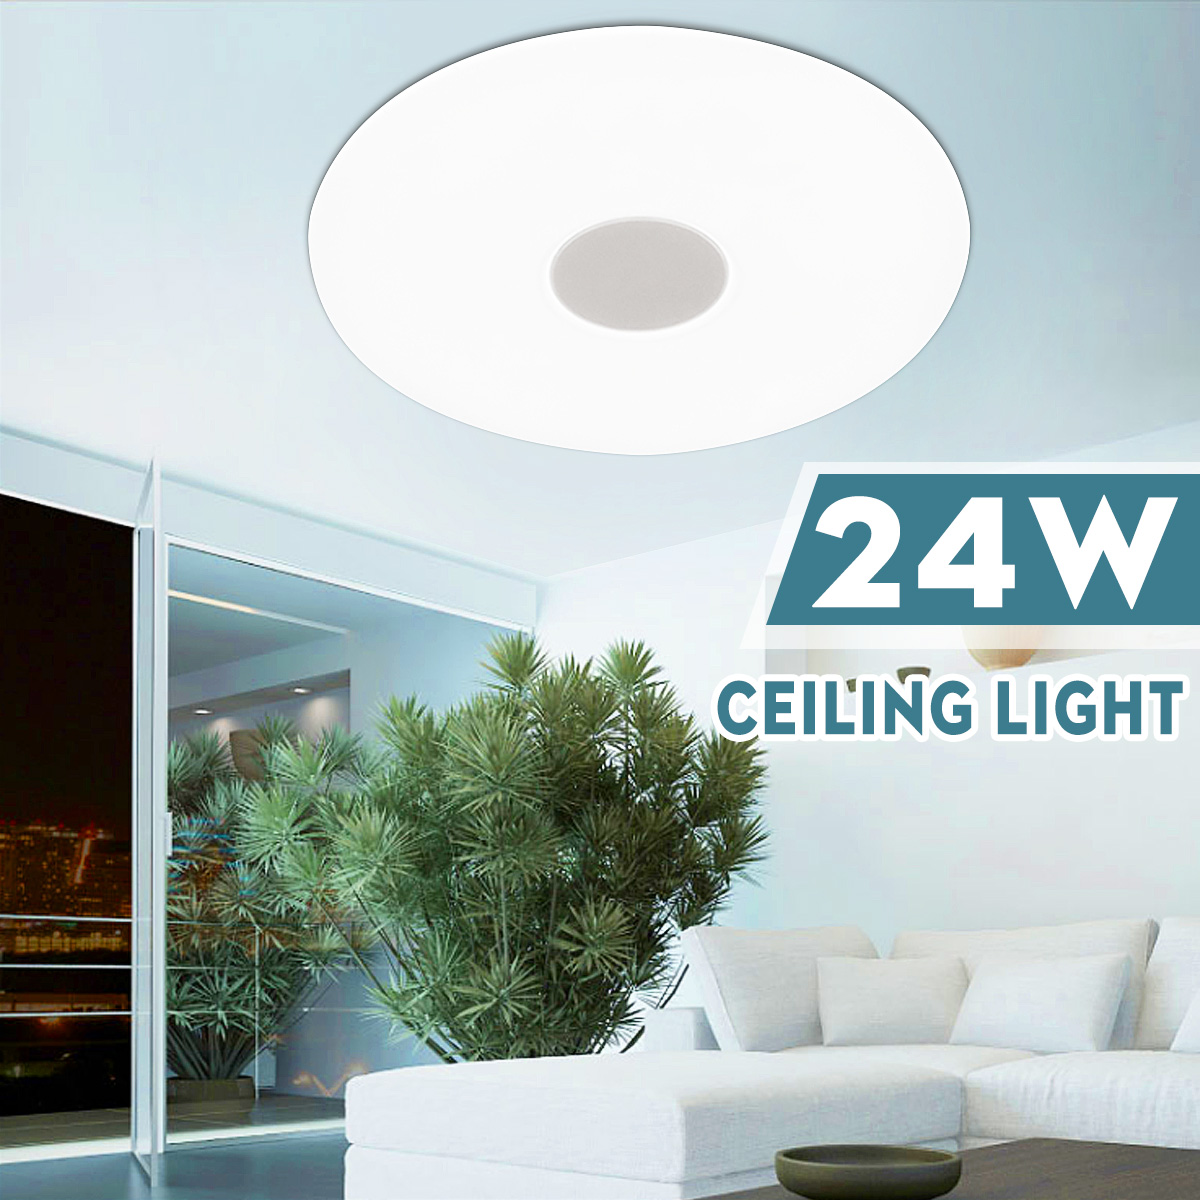 24w Bright Ultra Thin Led Ceiling Light Fixture Modern Lamp Living Room Lighting Surface Mounted Panel For Home Decorate